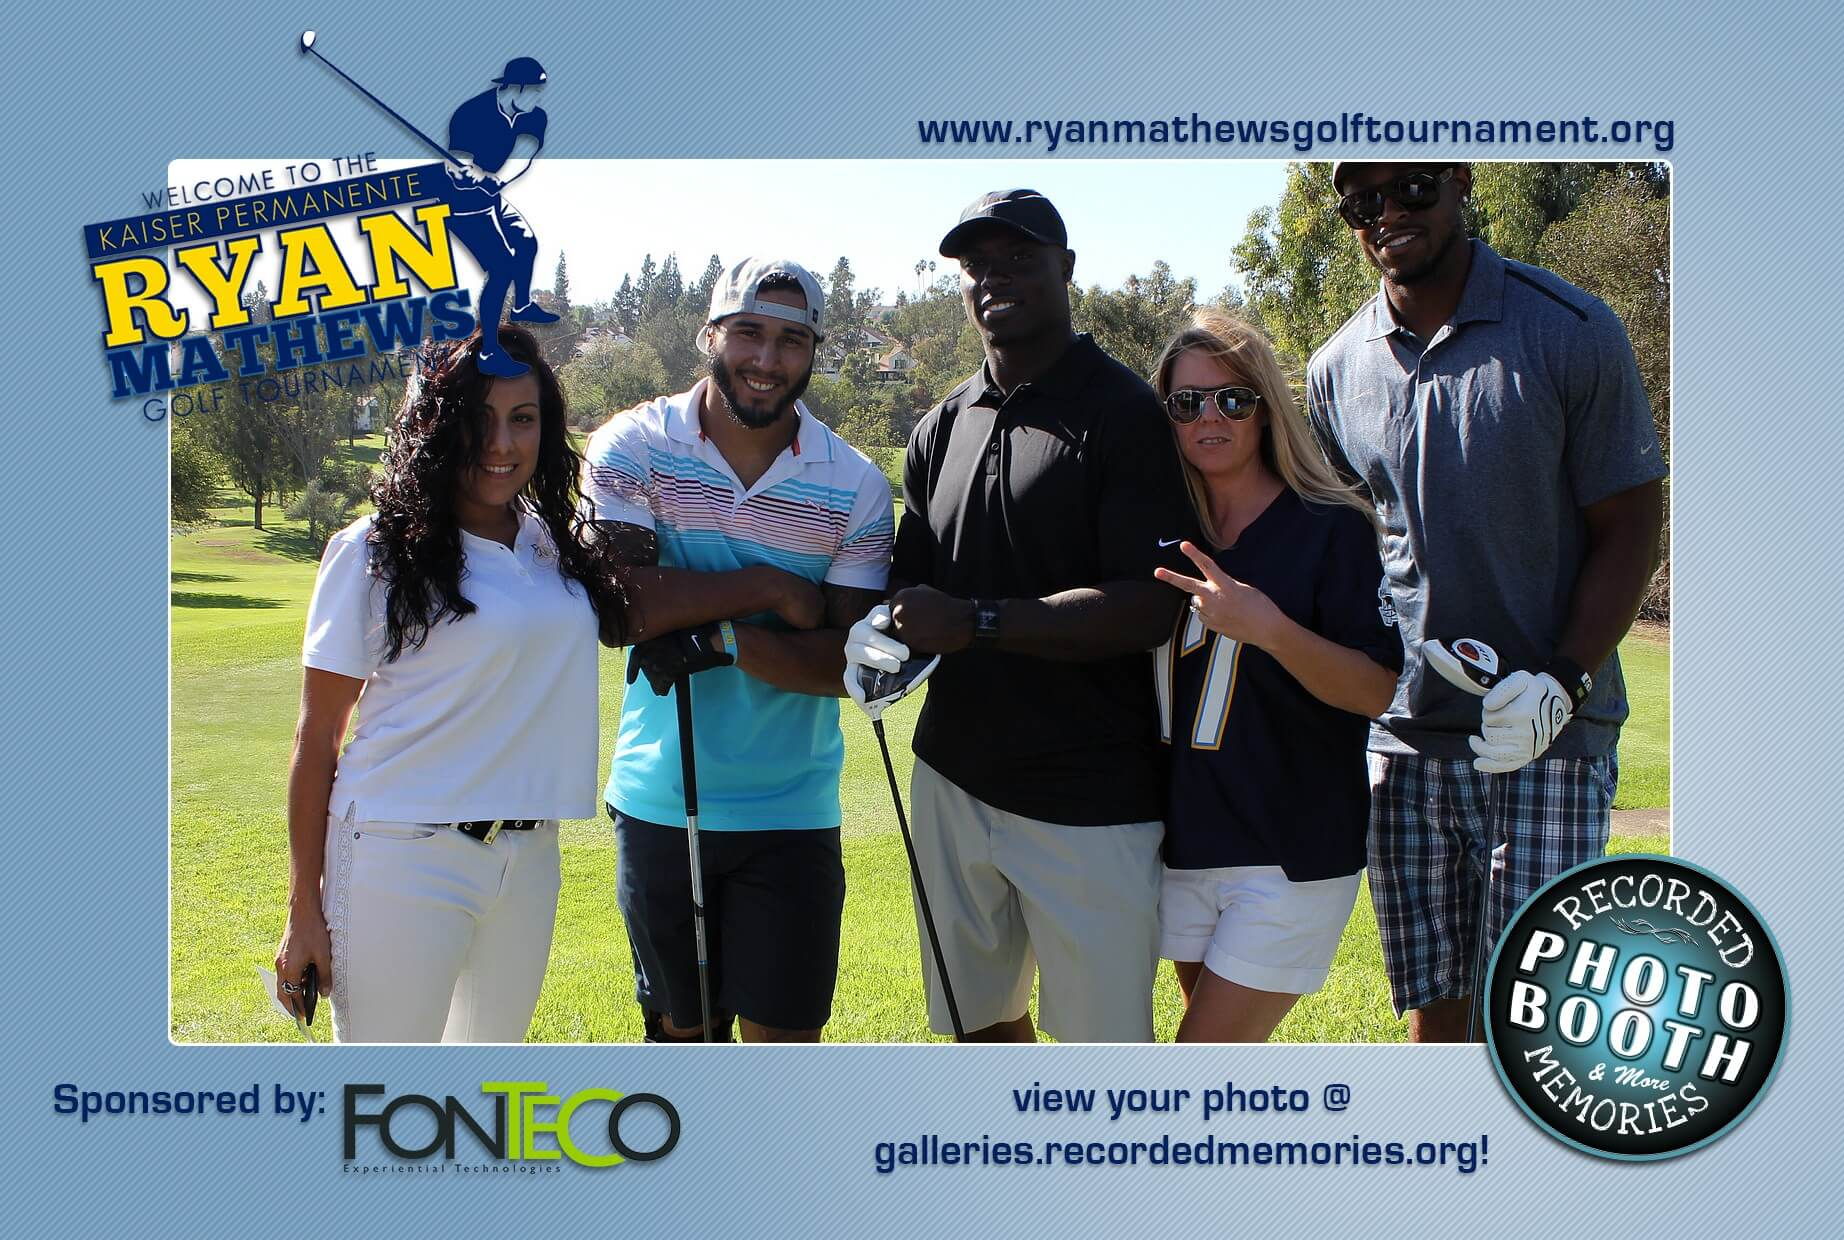 Ryan Matthews Golf Tournament Photo Booth